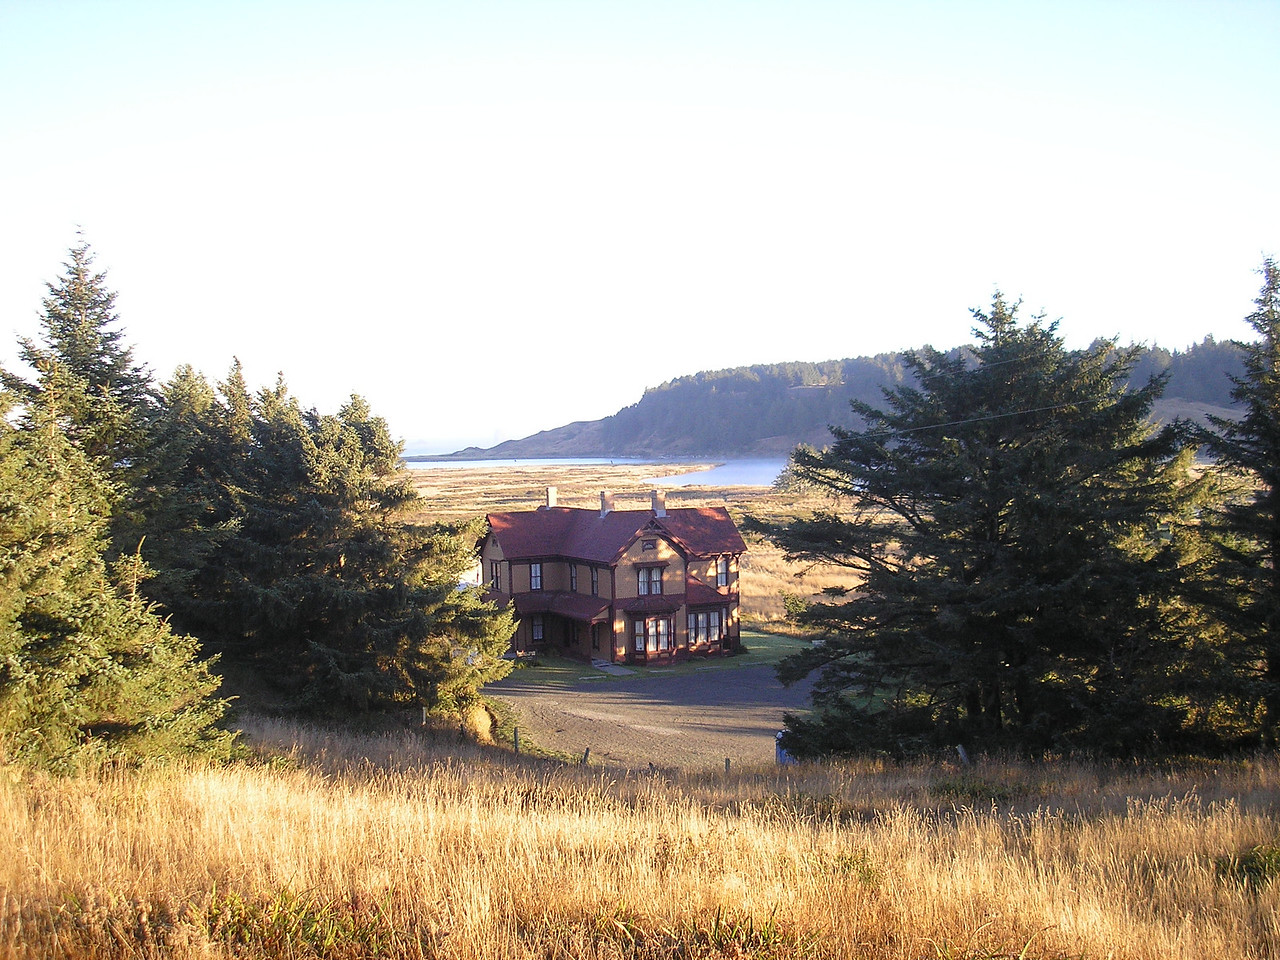 Here is a photo of The Hughes House with the Pacific Ocean in the background.